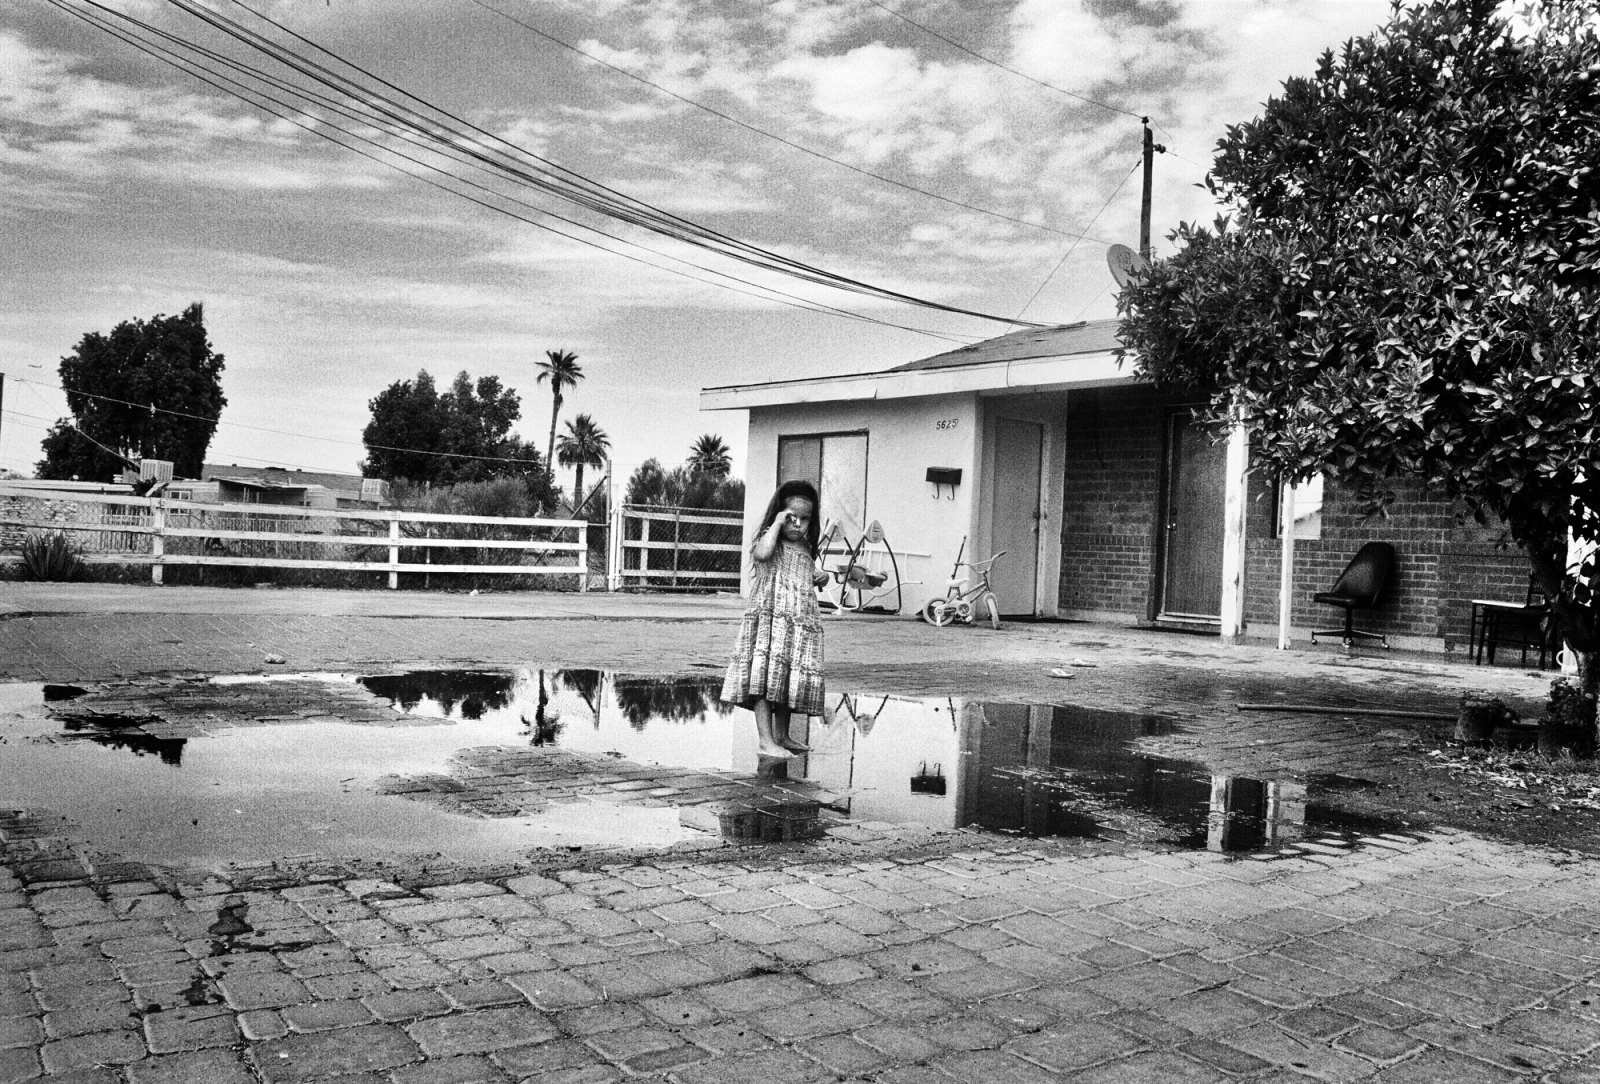 A young girl stands and cries in the desert heat of Arizona after her being hosed down with water in their front yard near Phoenix. The family could not afford air conditioning, so improvised the best they could to keep cool.